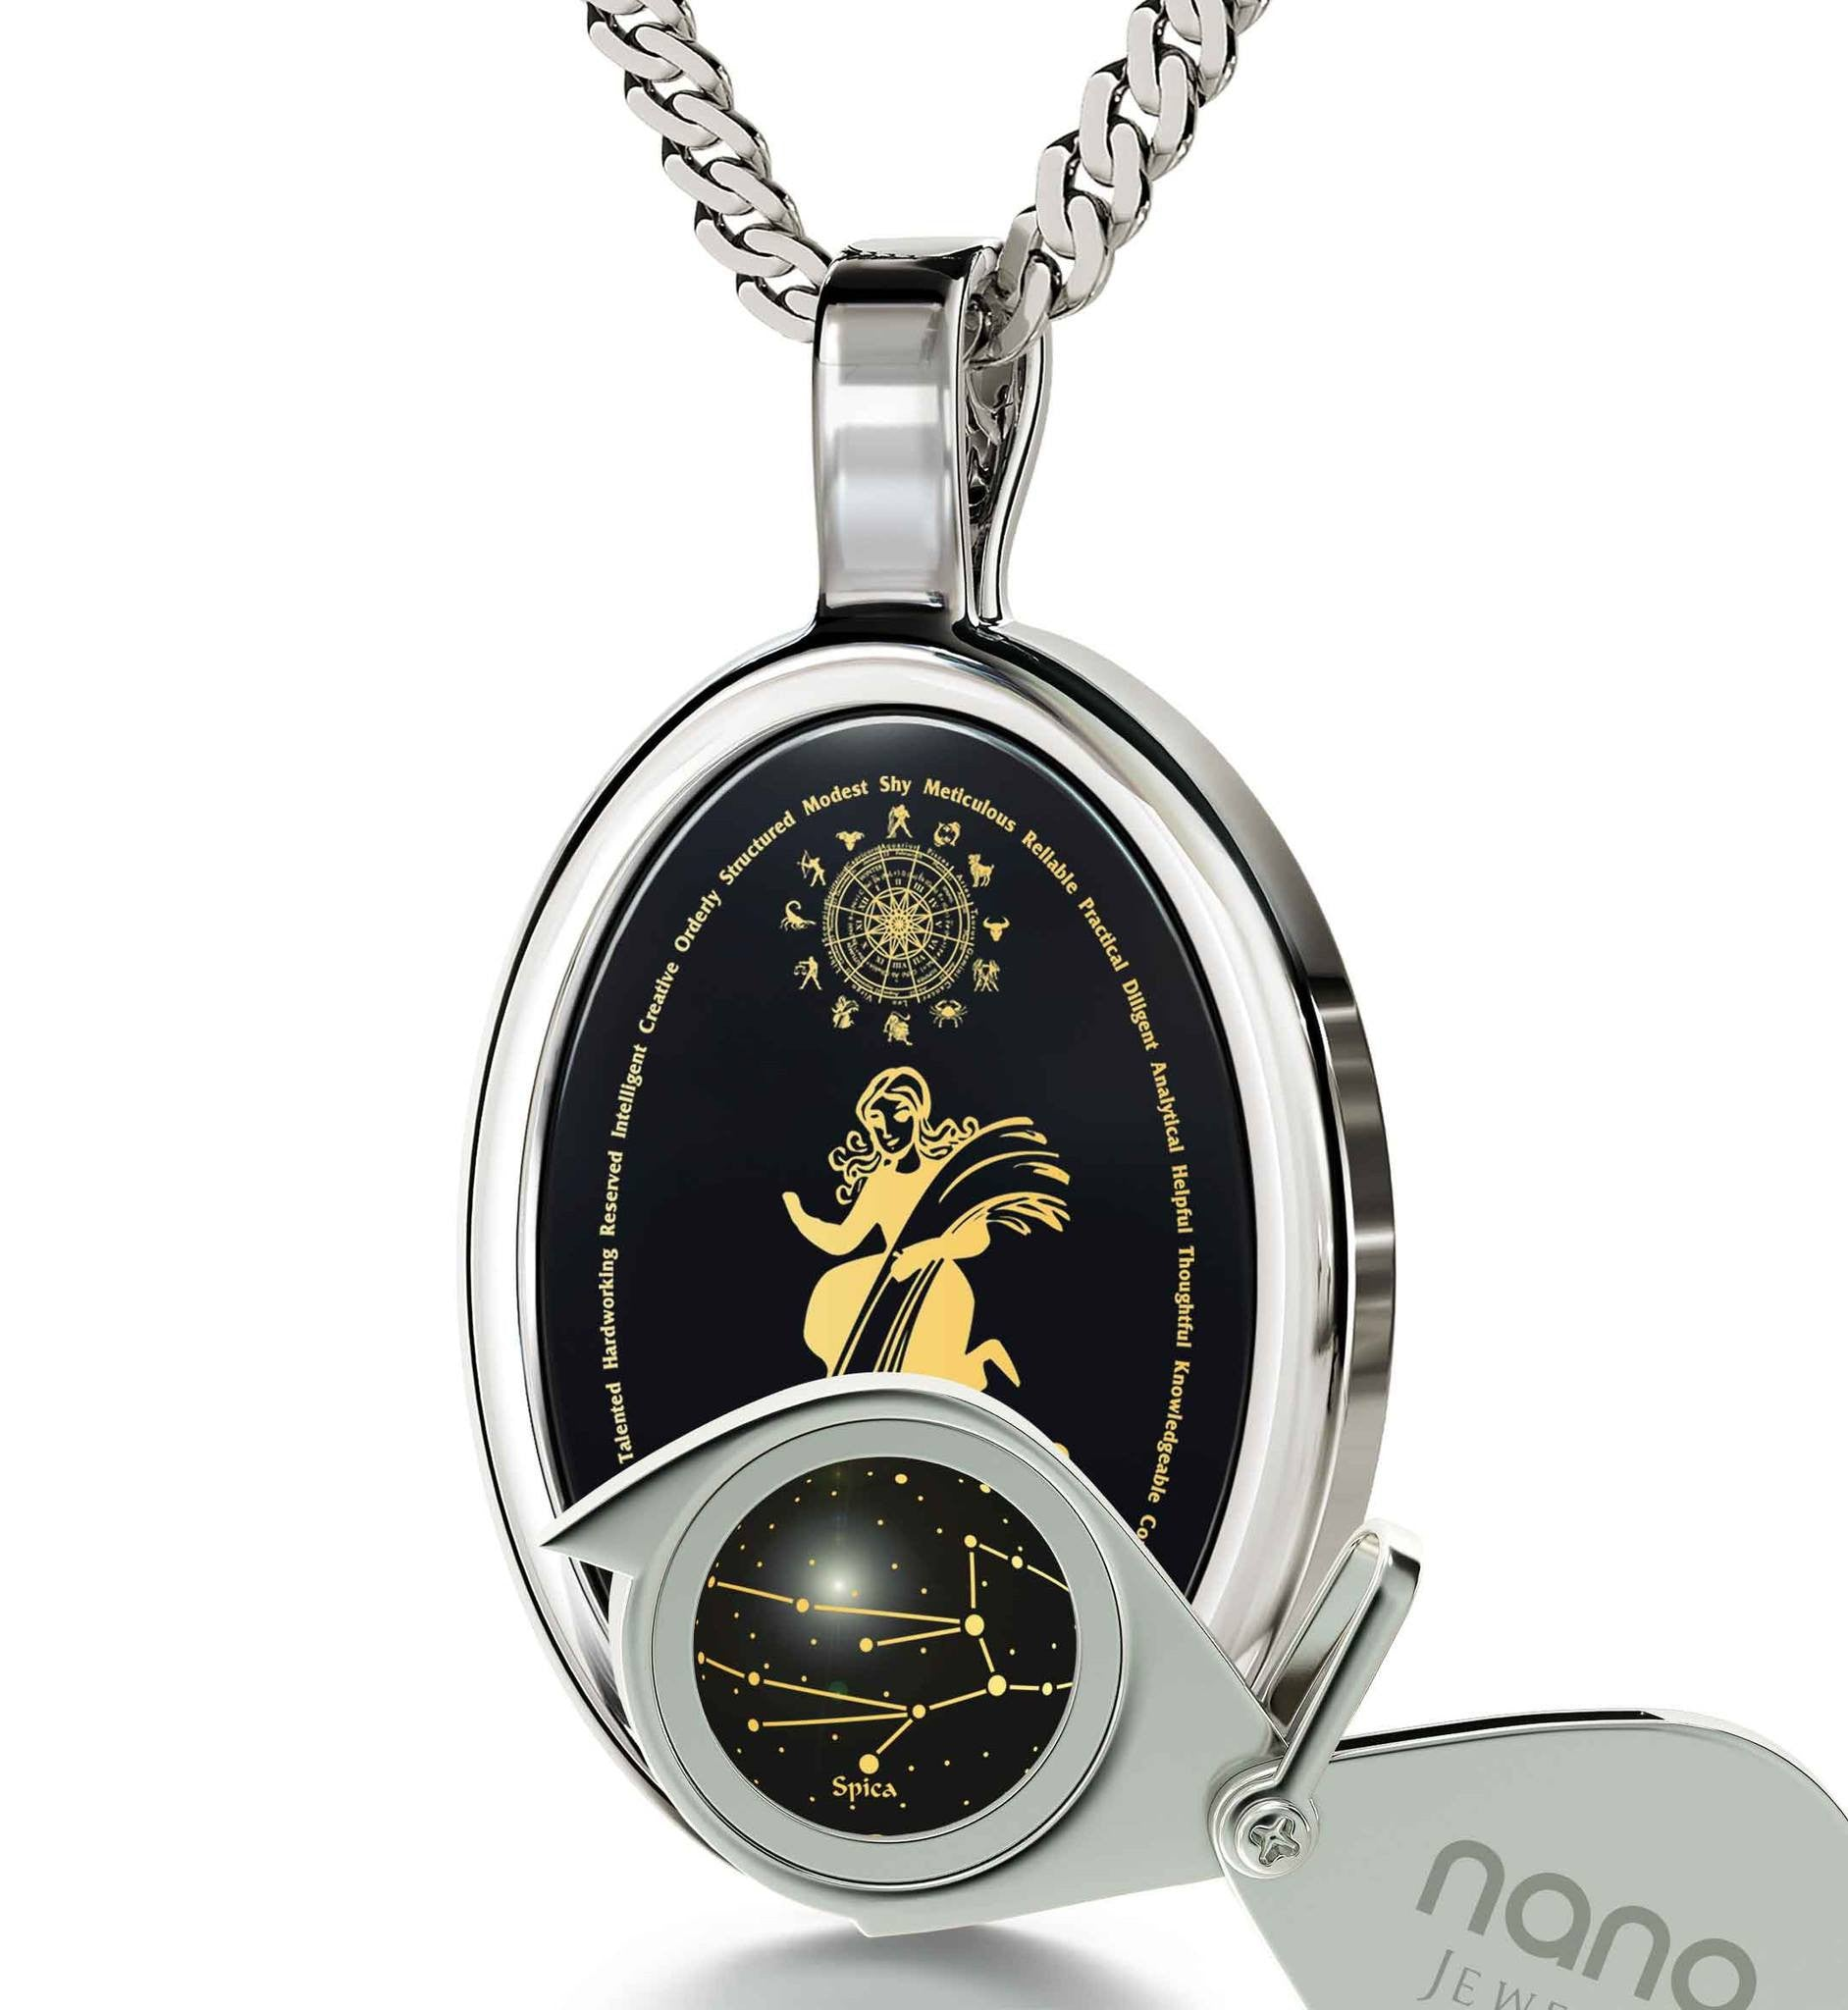 Top Gift Ideas for Women: Zodiac Sign Necklace, Women's 14k White Gold Jewelry, Good Christmas Presents for Girlfriend by Nano